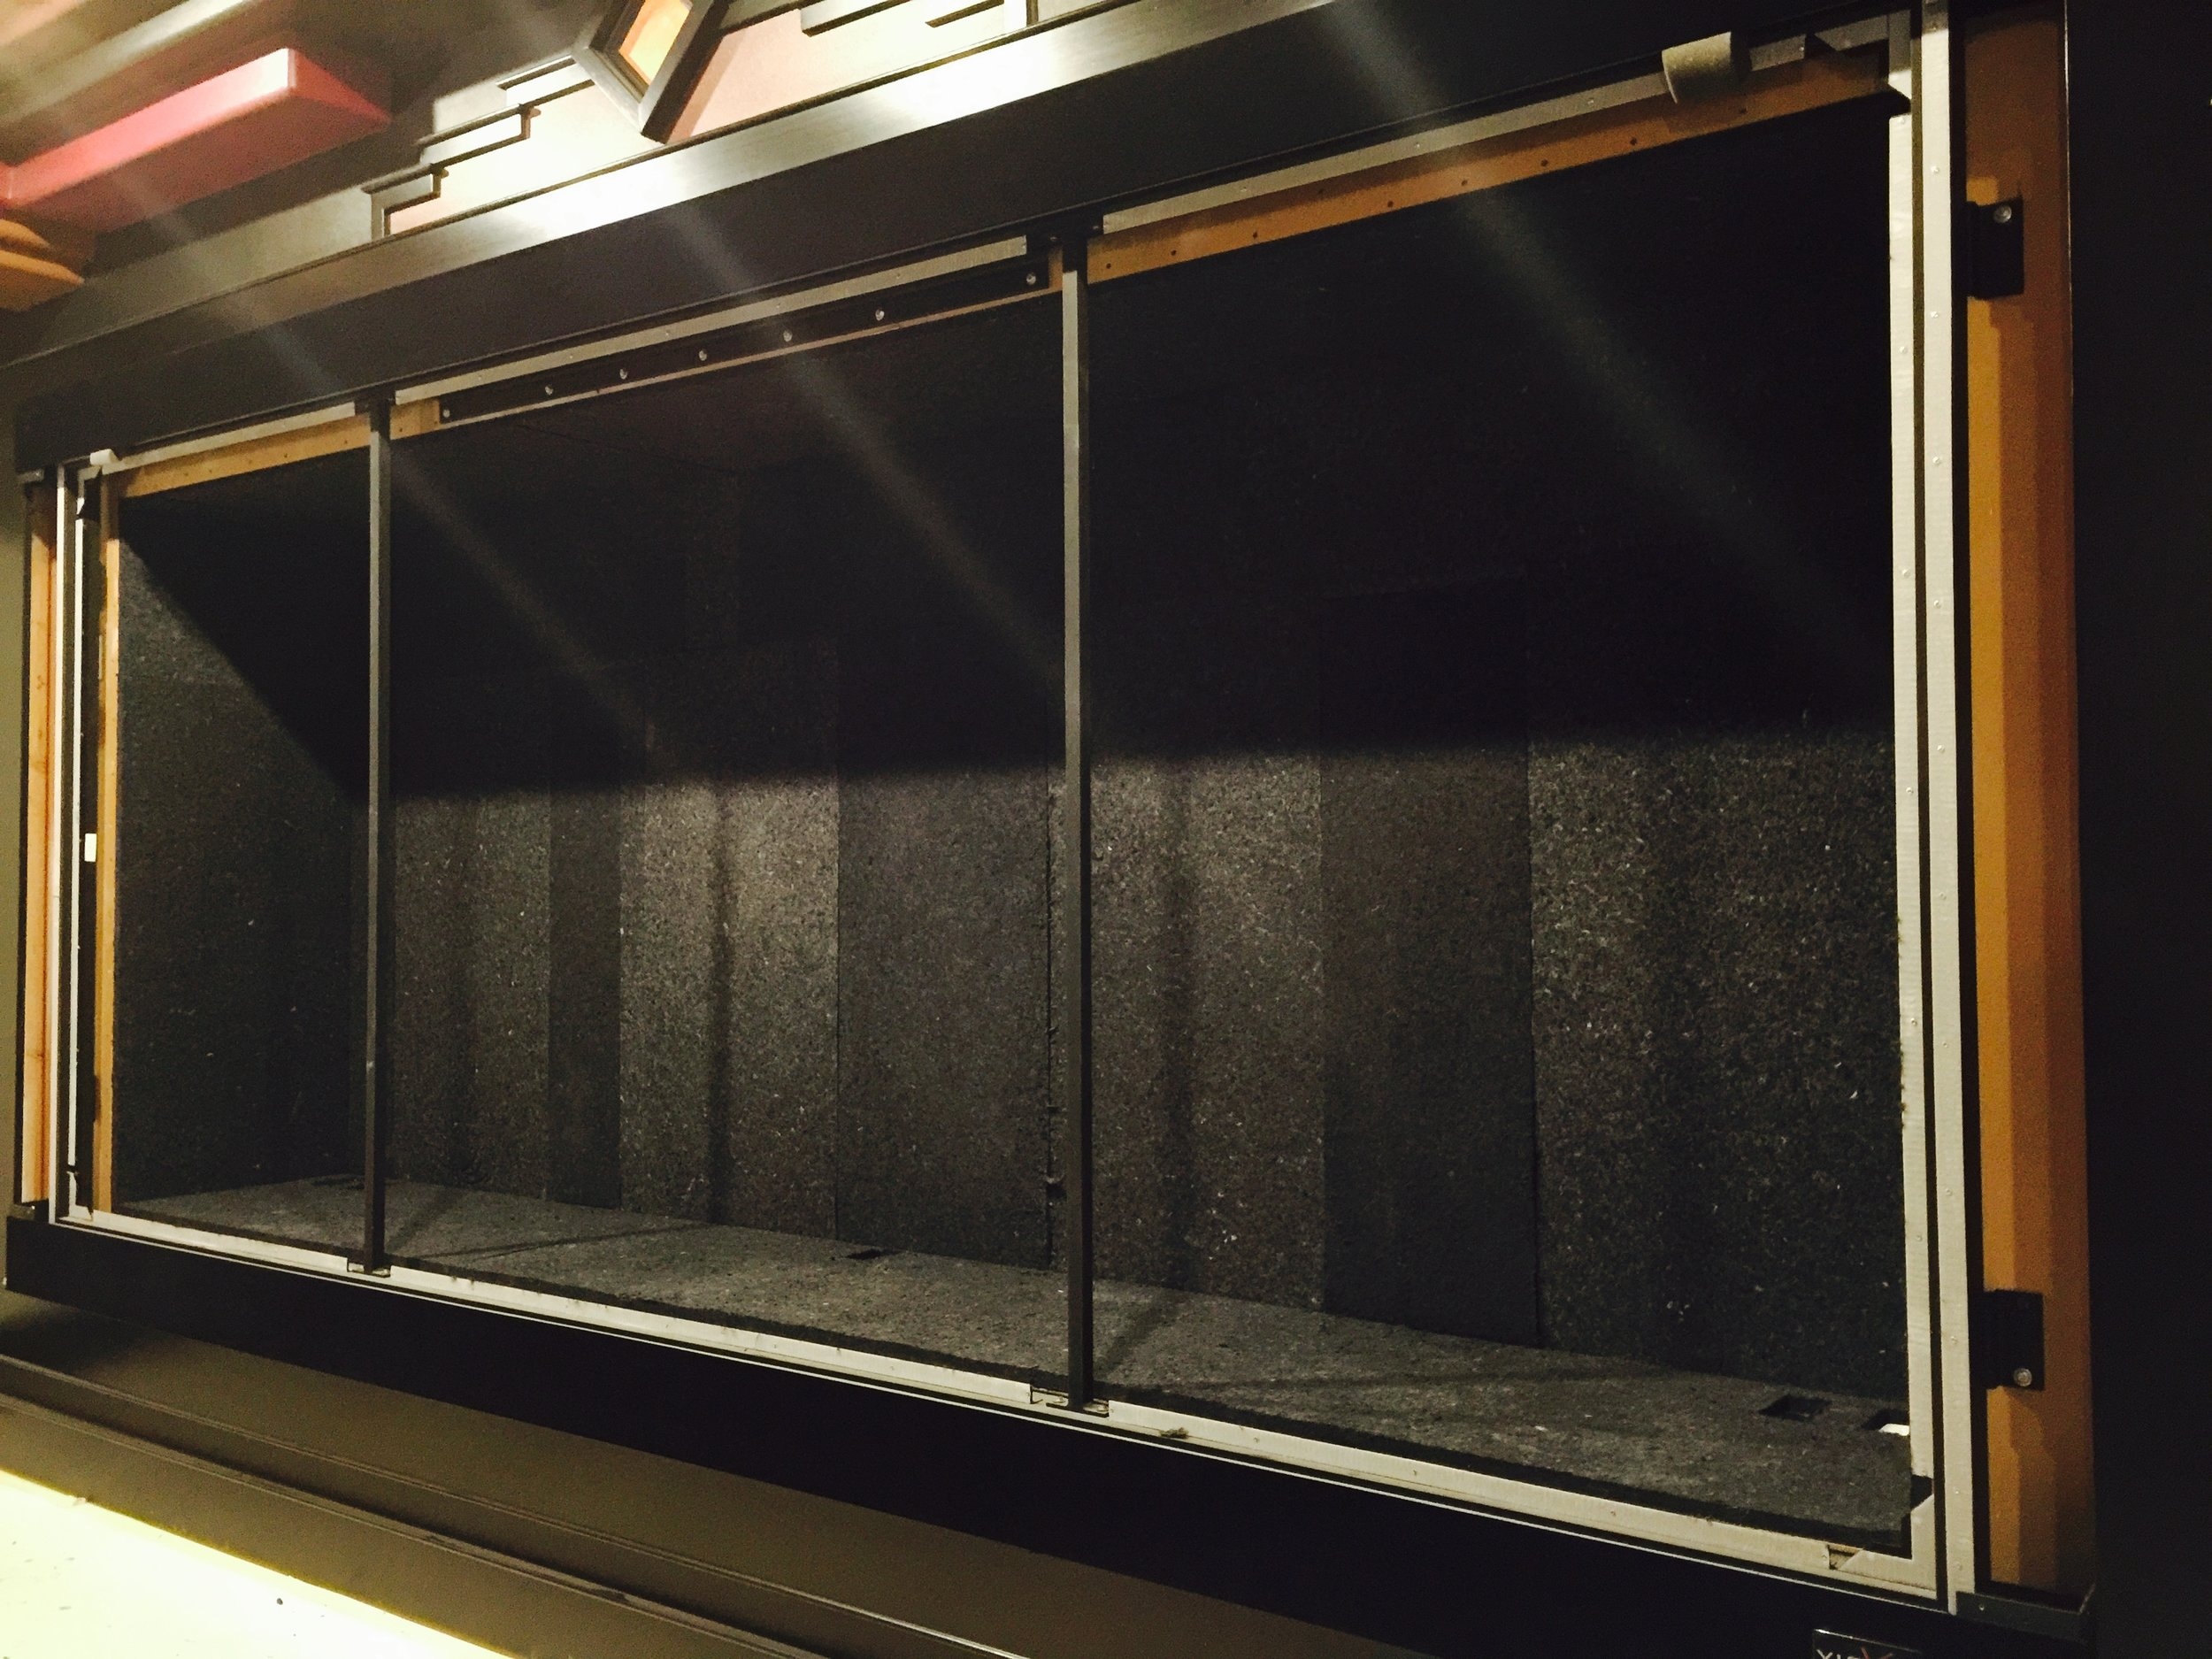 Video screen frame in place, perforated screen allows ideal speaker placement